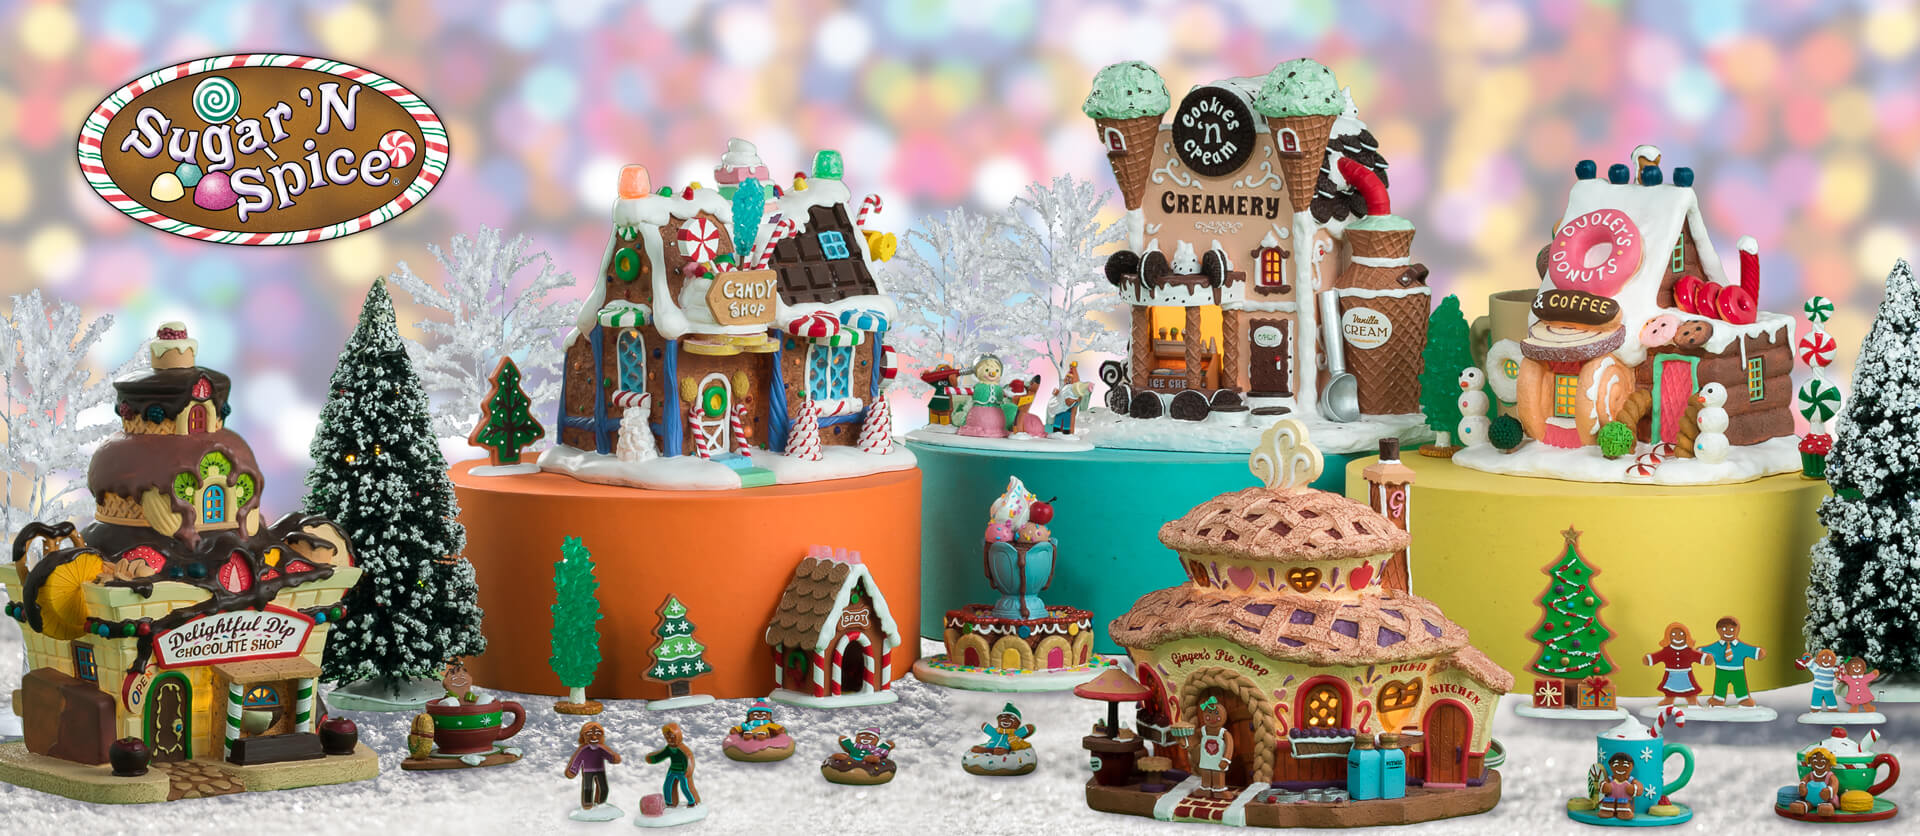 Lemax Sugar and Spice Collection